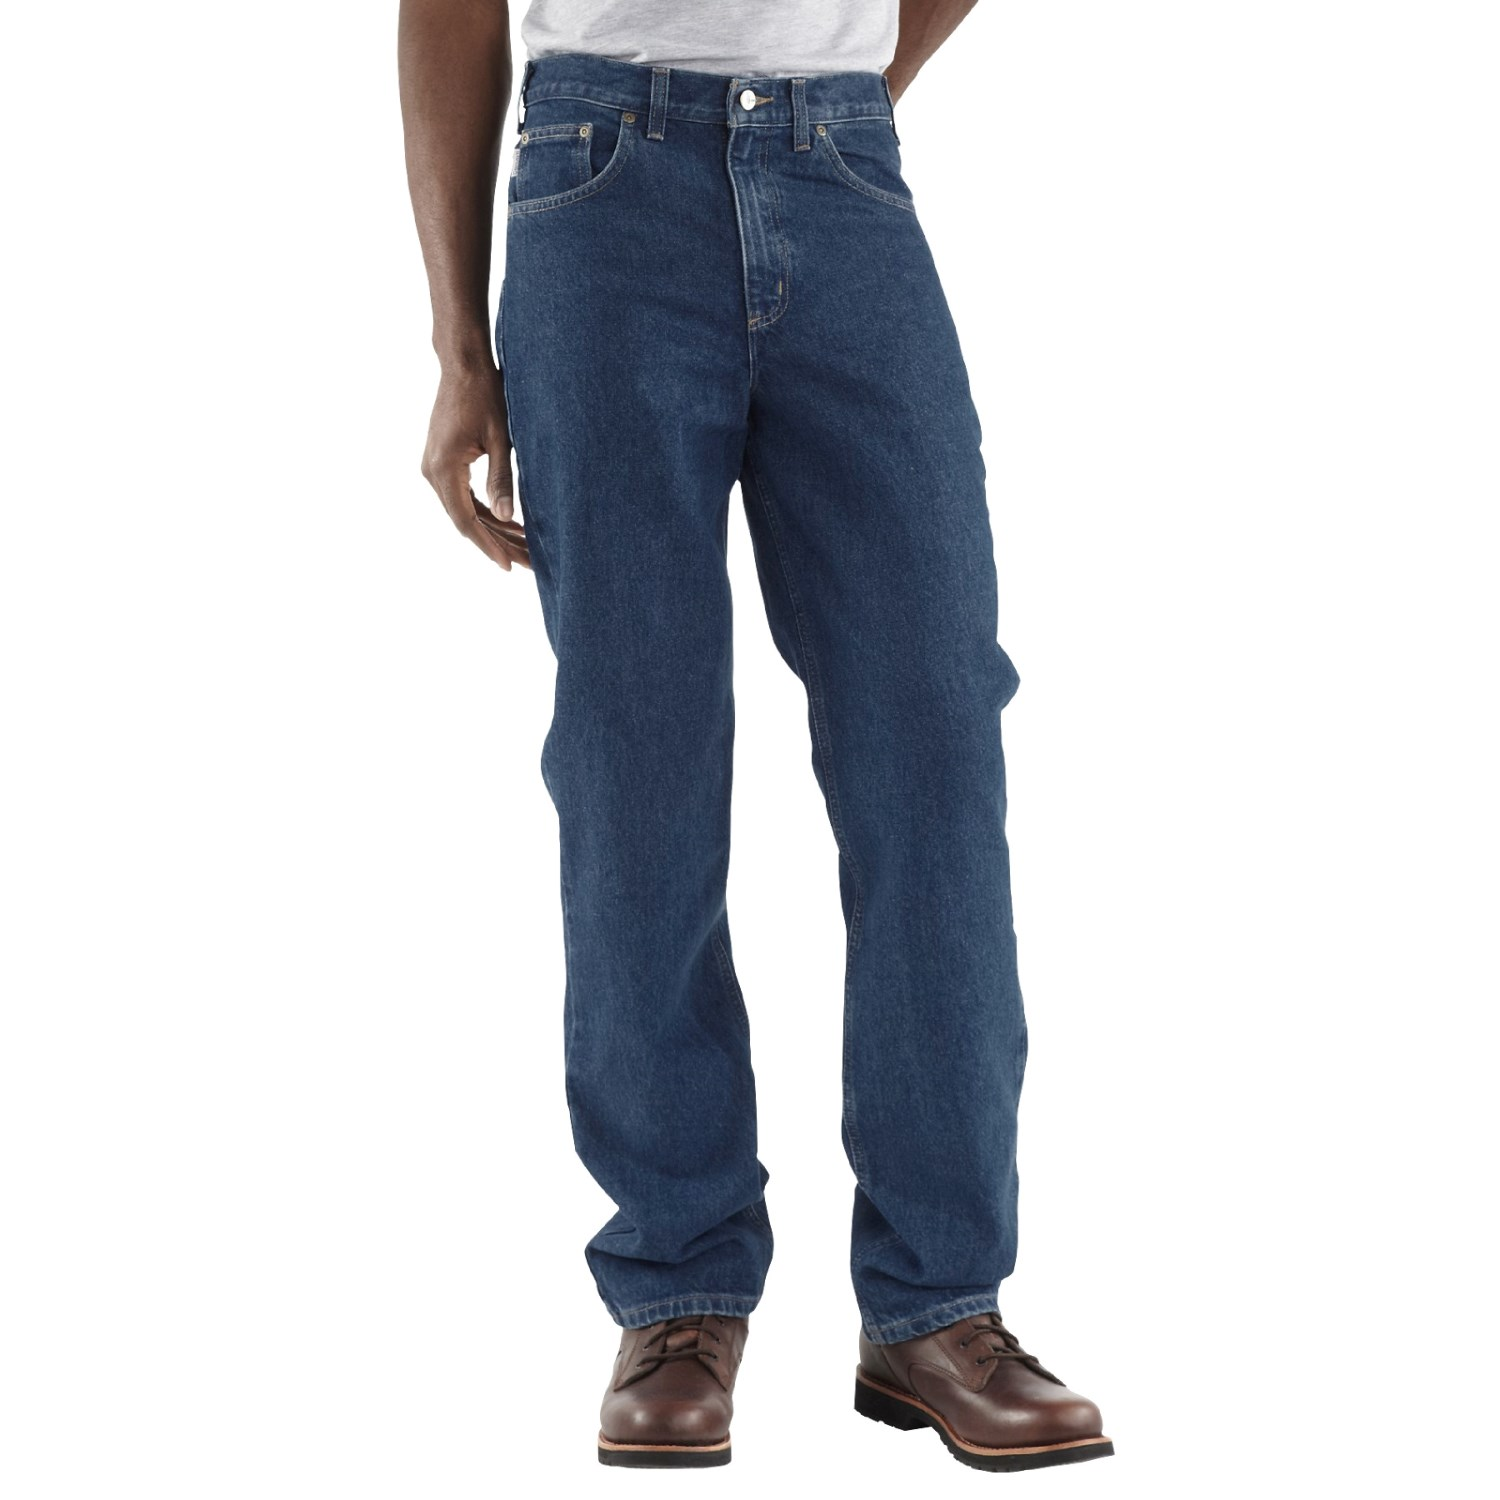 See our selection of handcrafted straight fit premium jeans for men.